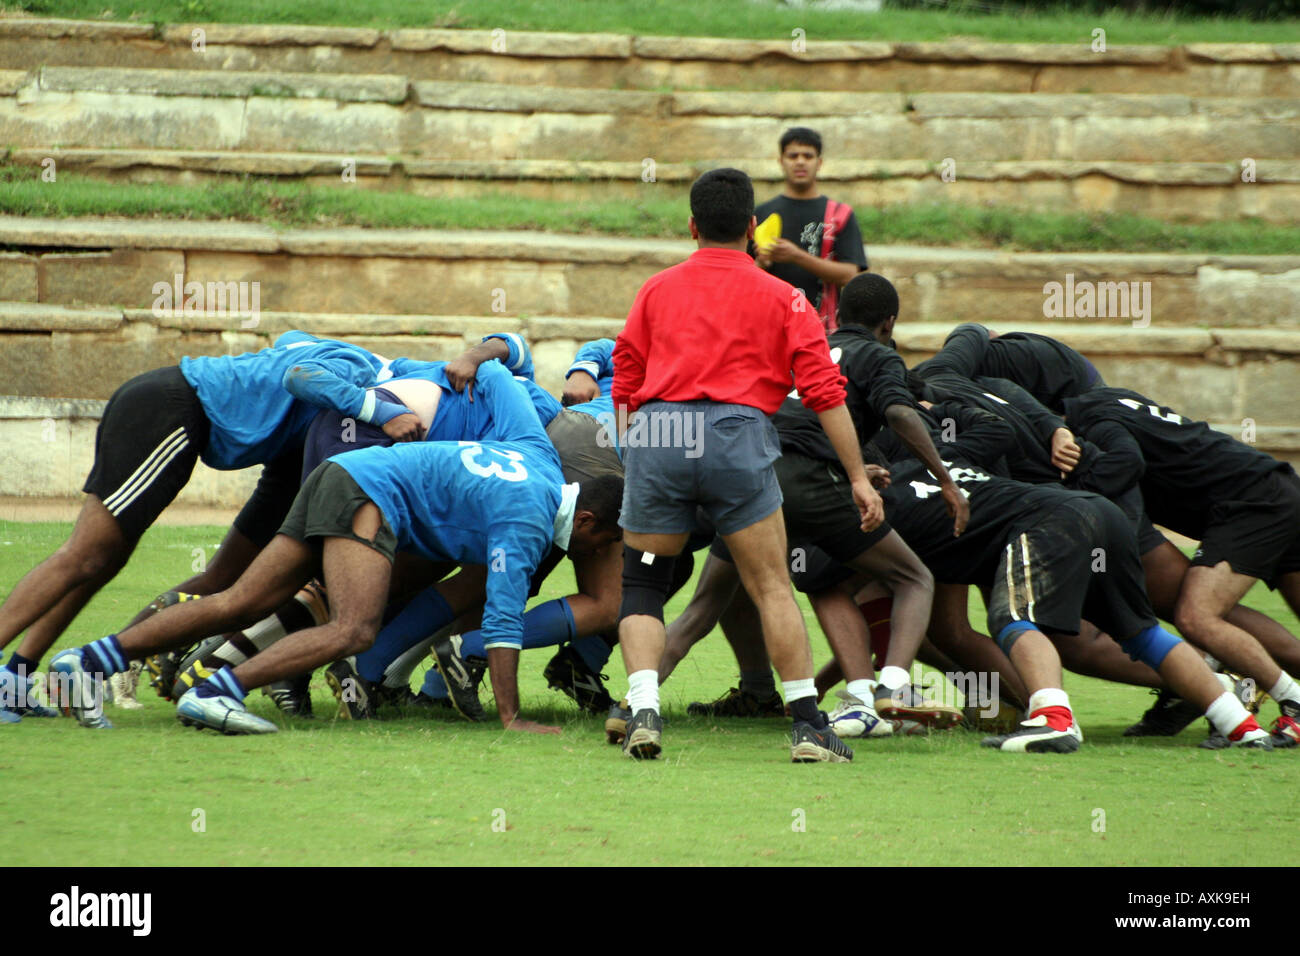 A match involving Bangalore Rugby Football Club, affiliated to the Karnataka Rugby Union (KRU). - Stock Image